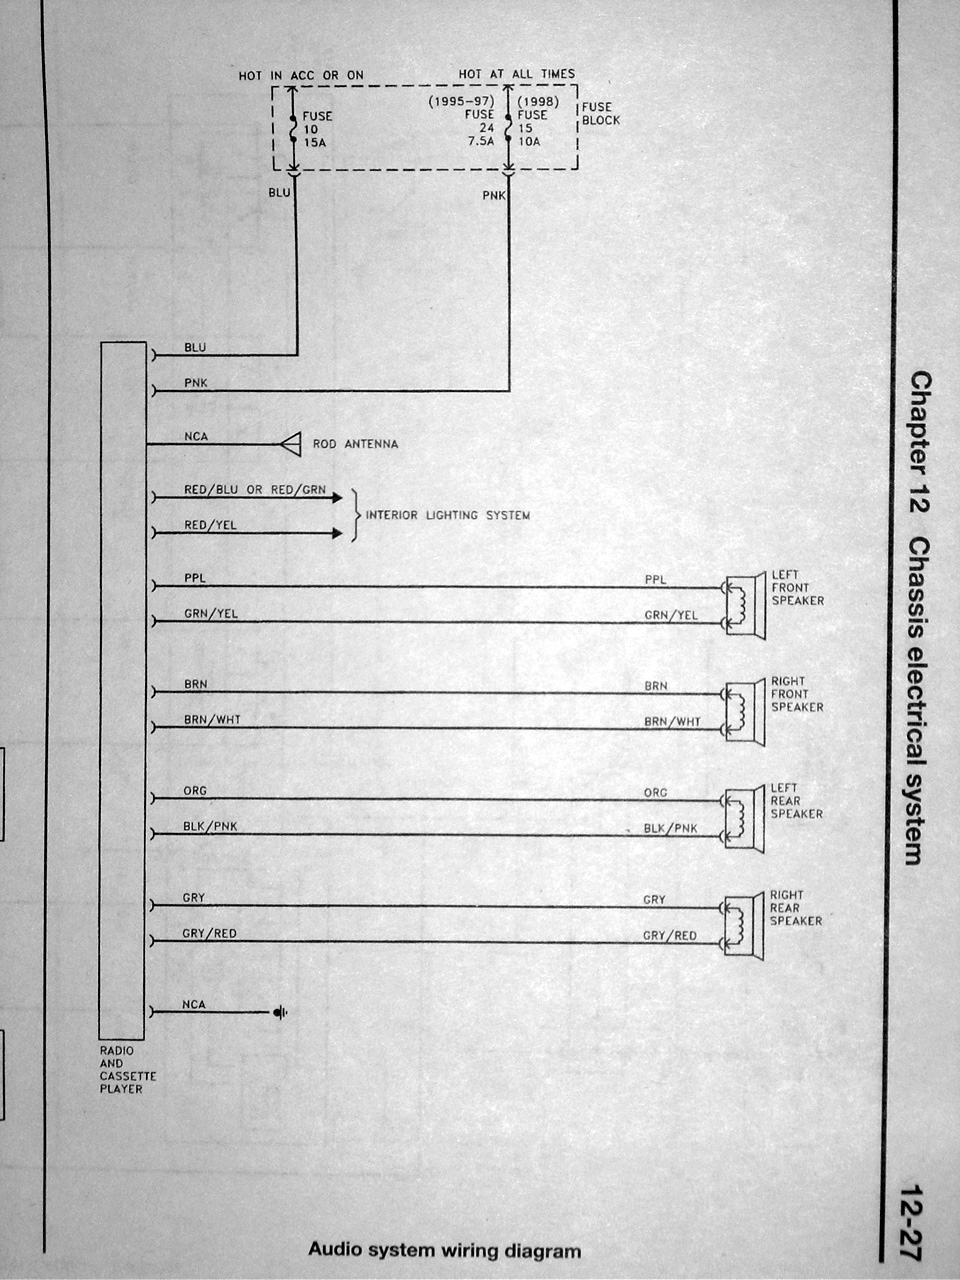 DSC01849 wiring diagram thread *useful info* nissan forum 1995 nissan sentra fuse box diagram at virtualis.co